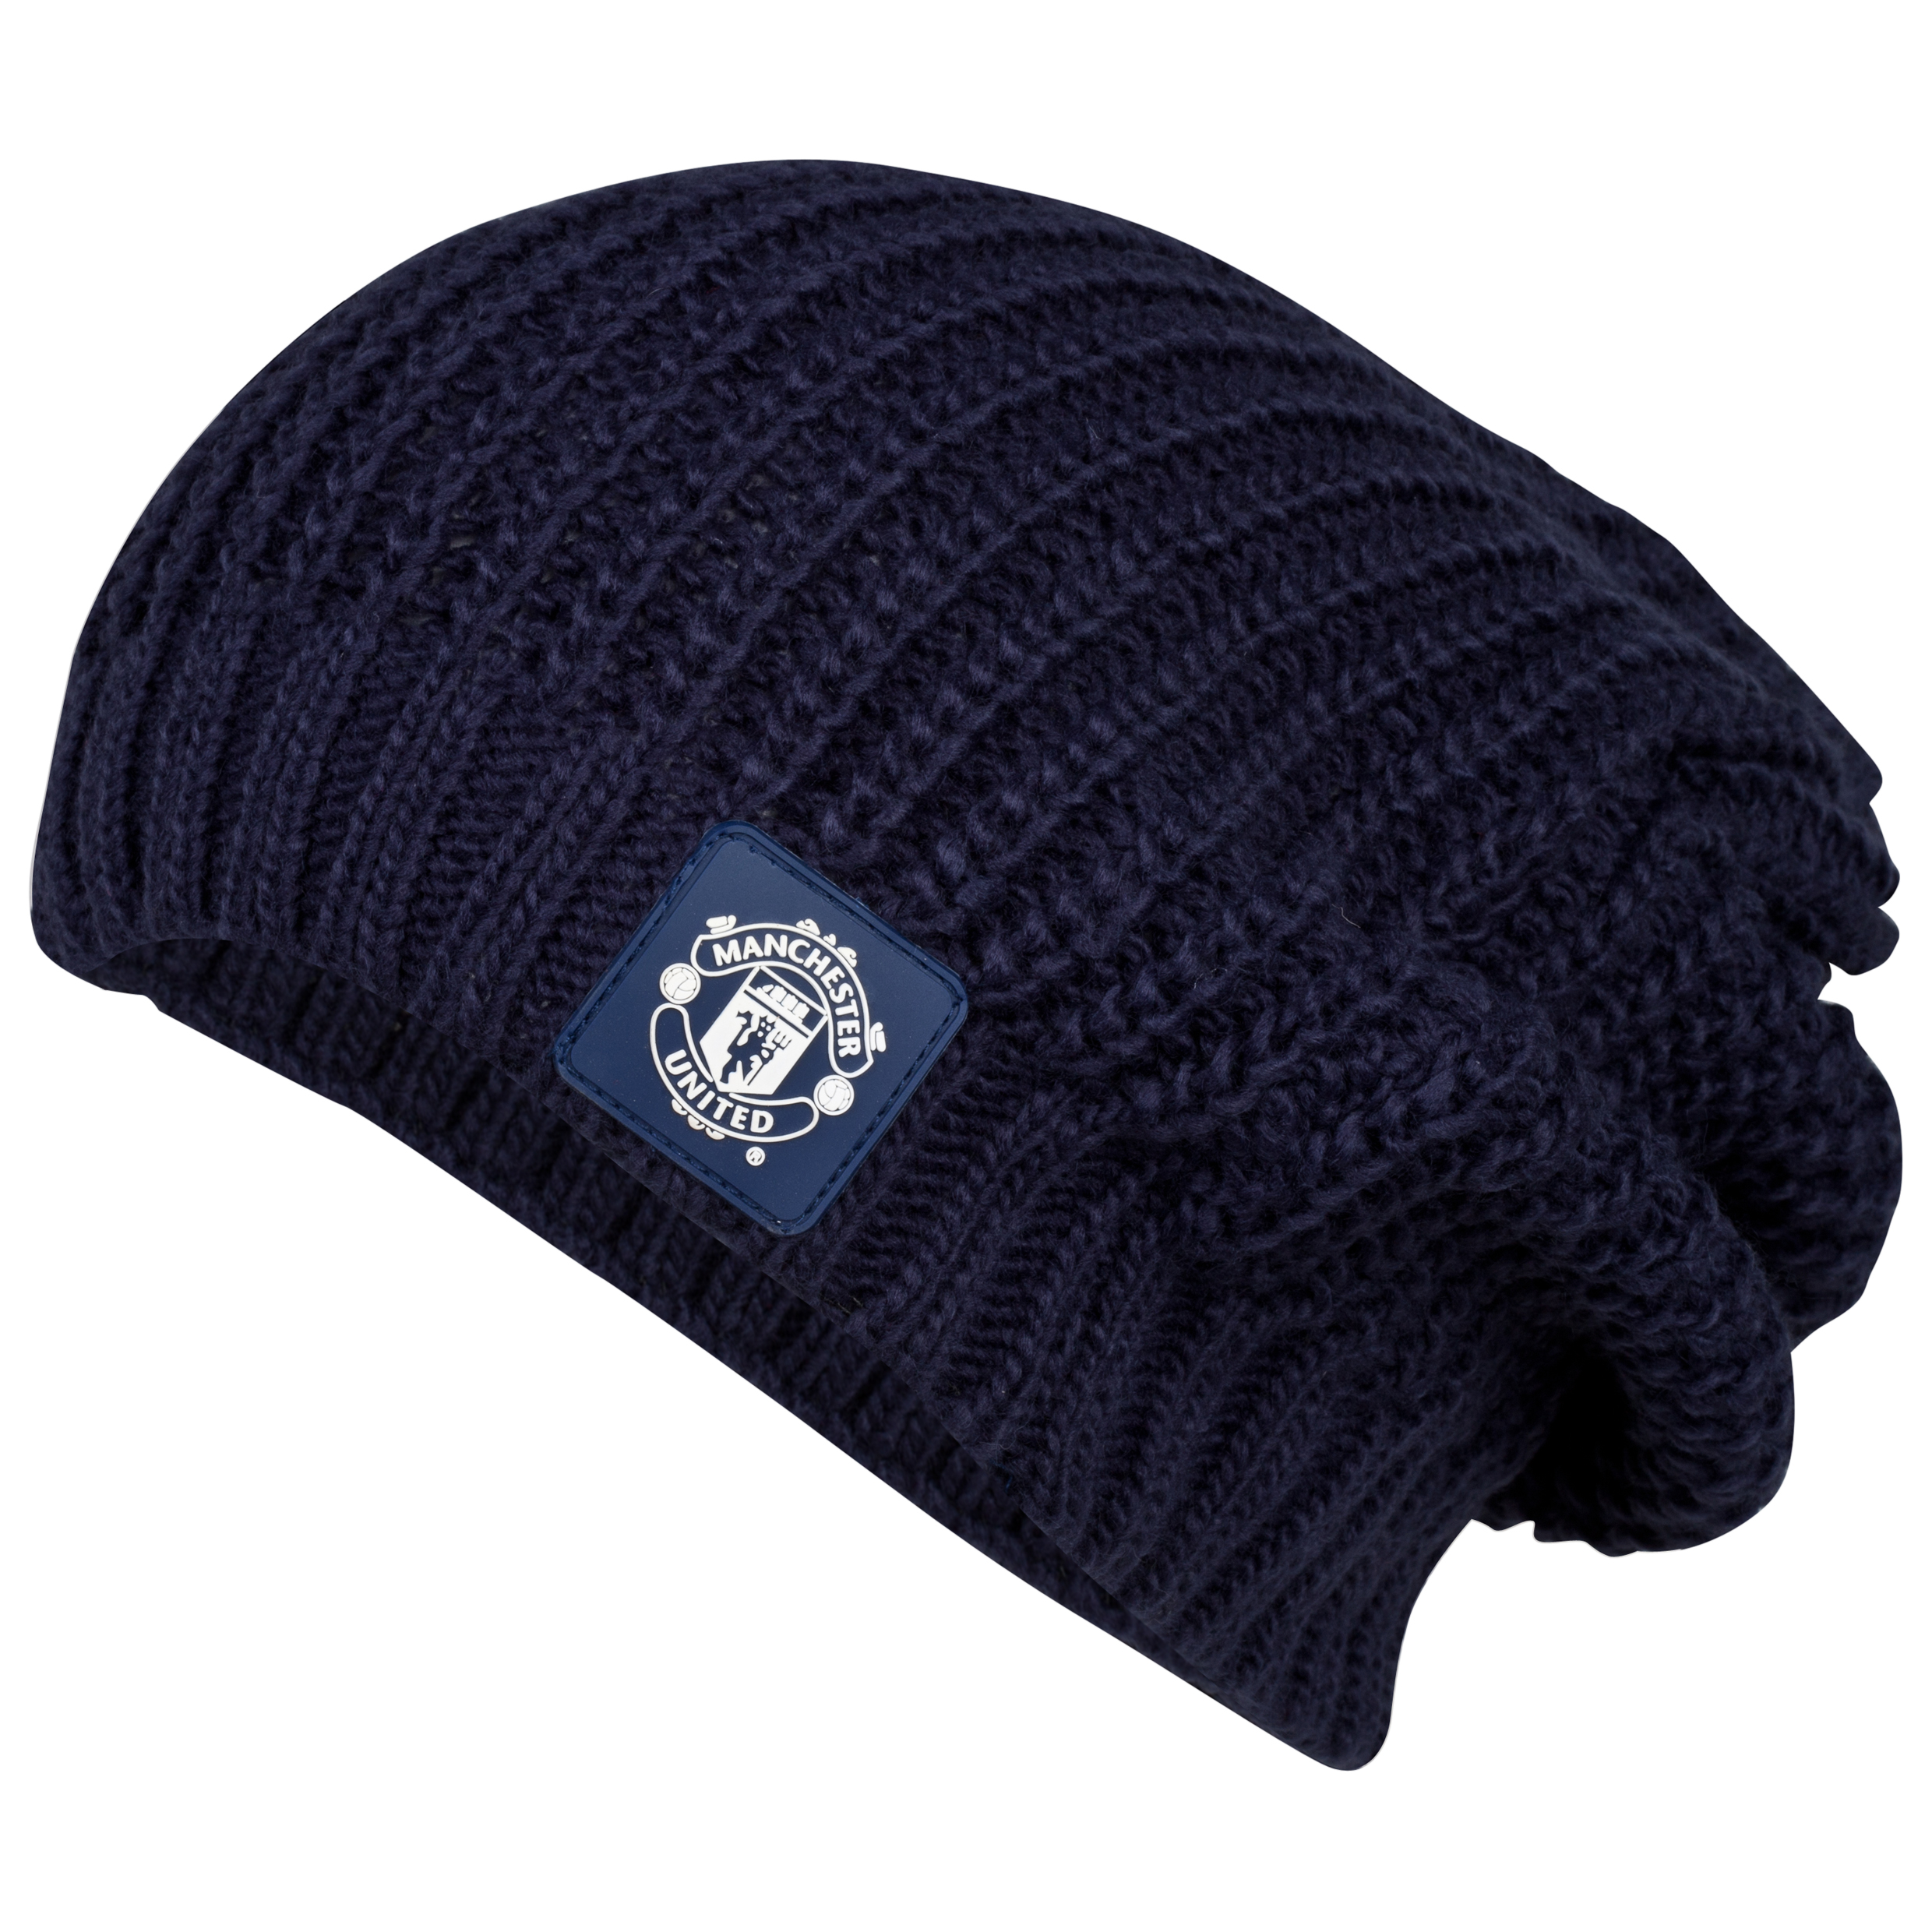 Manchester United Oversized Fashion Beanie Hat - Womens Navy